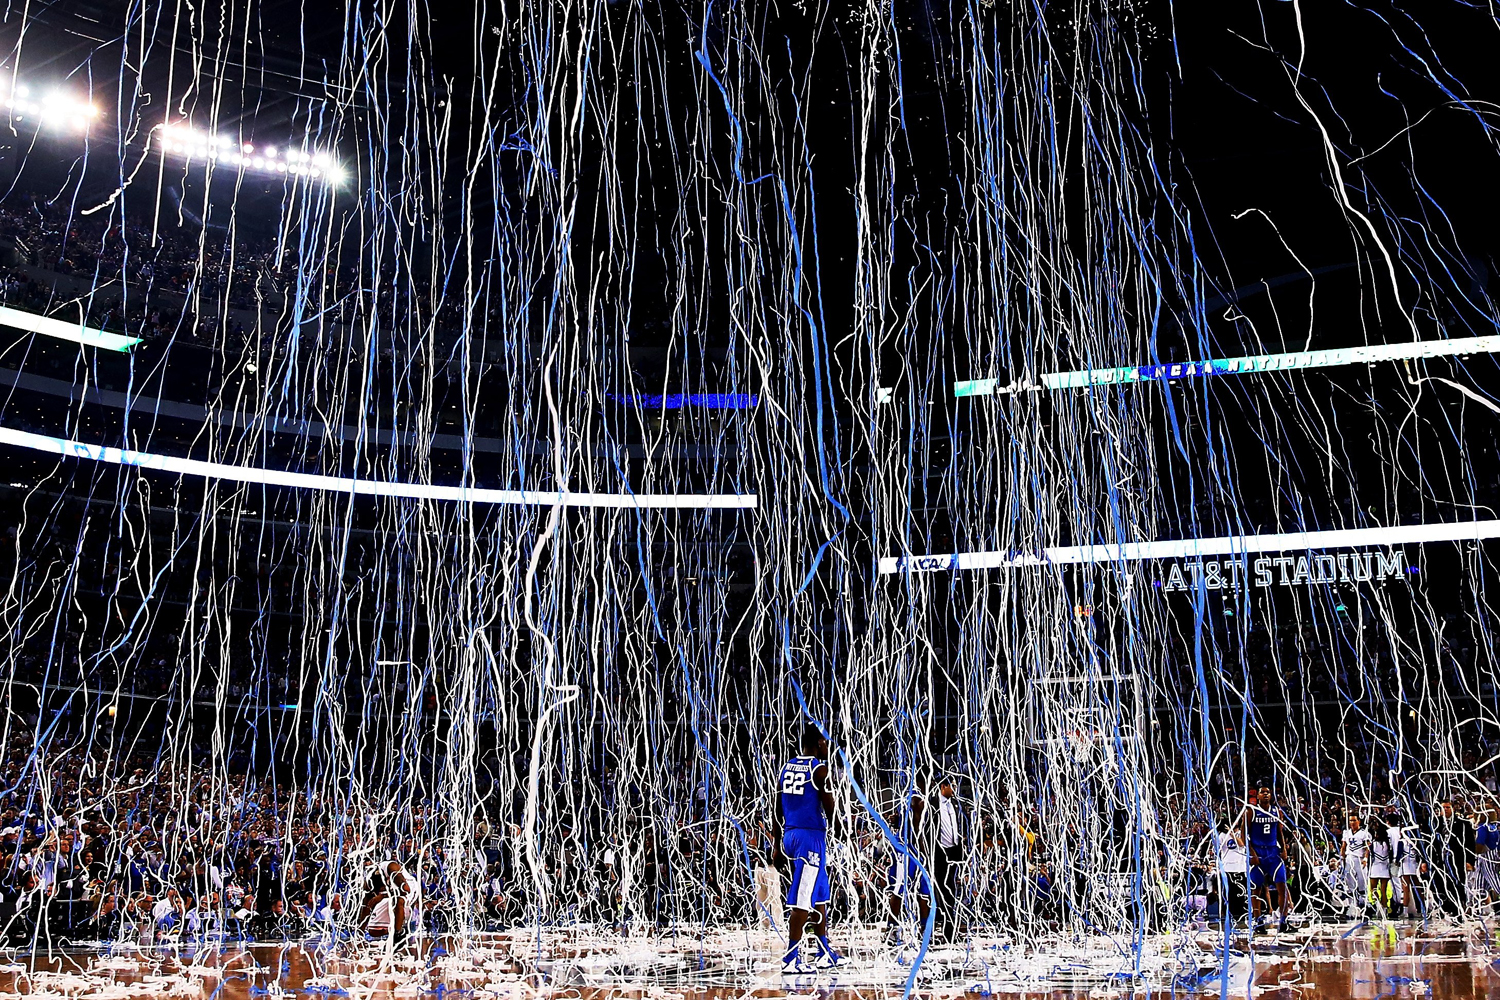 Apr. 7, 2014. Alex Poythress #22 of the Kentucky Wildcats walks off the court after losing to the Connecticut Huskies 60-54 in the NCAA Men's Final Four Championship at AT&T Stadium in Arlington, Texas.